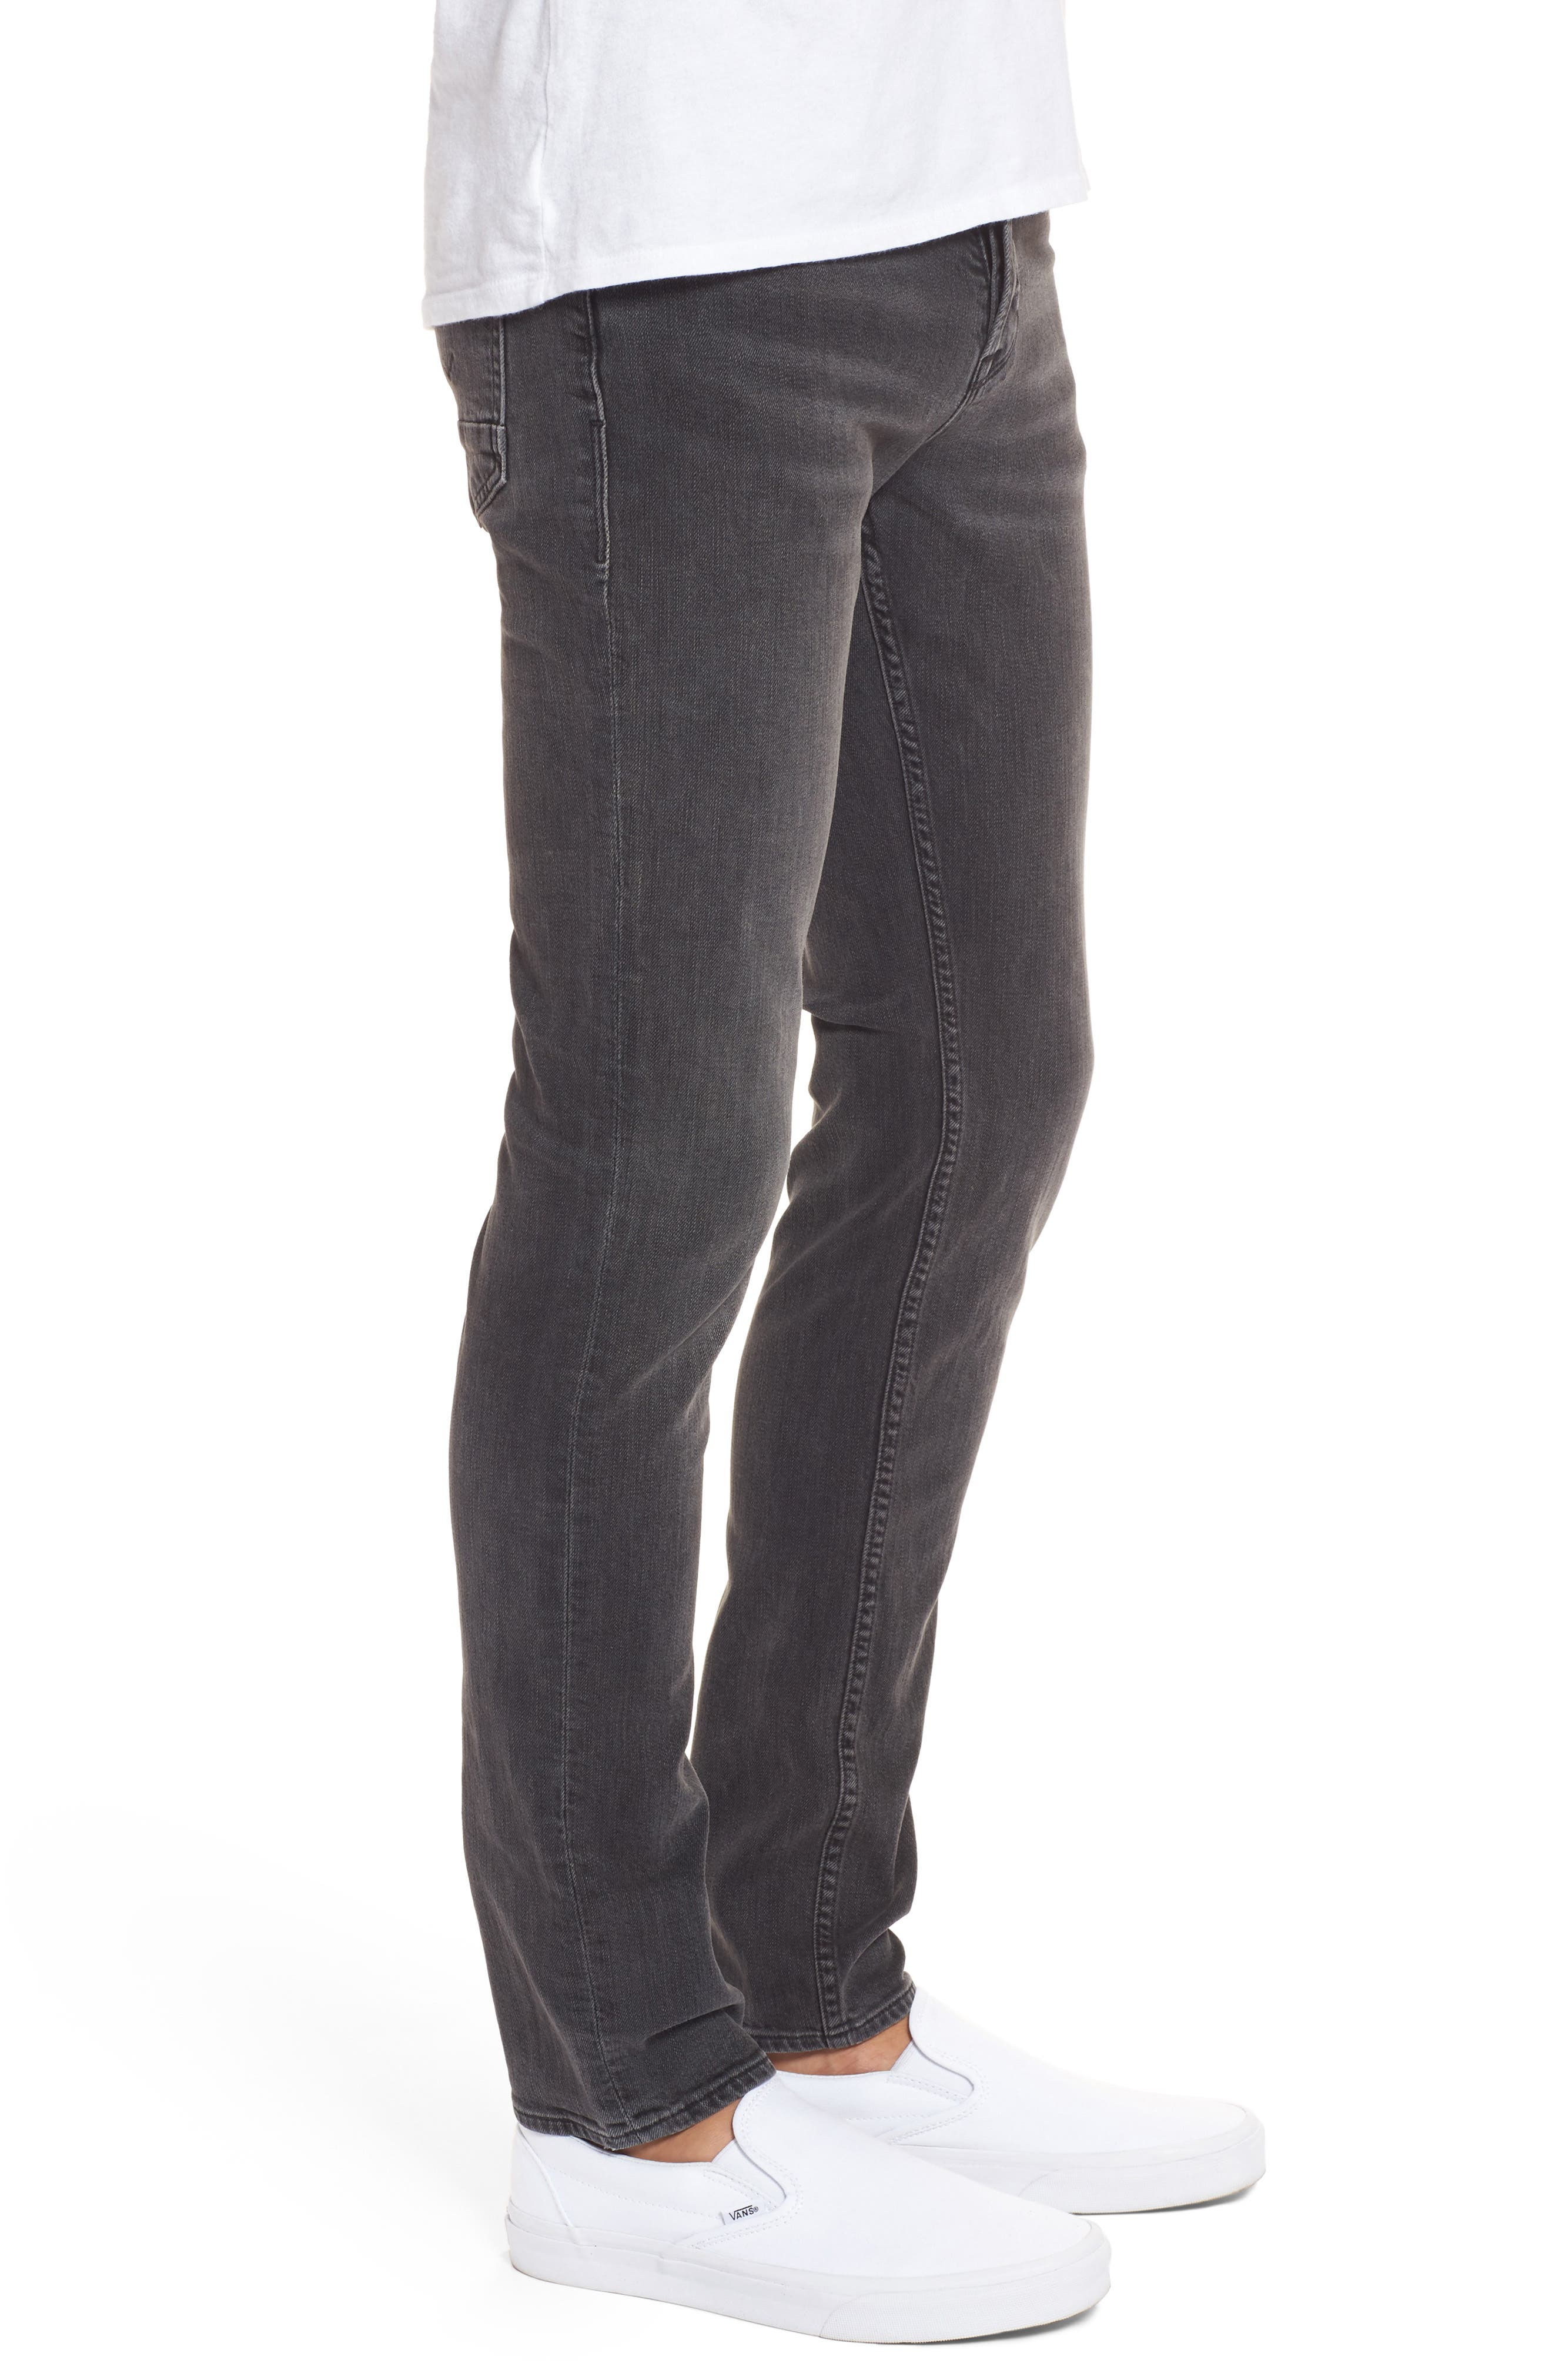 Axl Skinny Fit Jeans,                             Alternate thumbnail 3, color,                             Oxidize